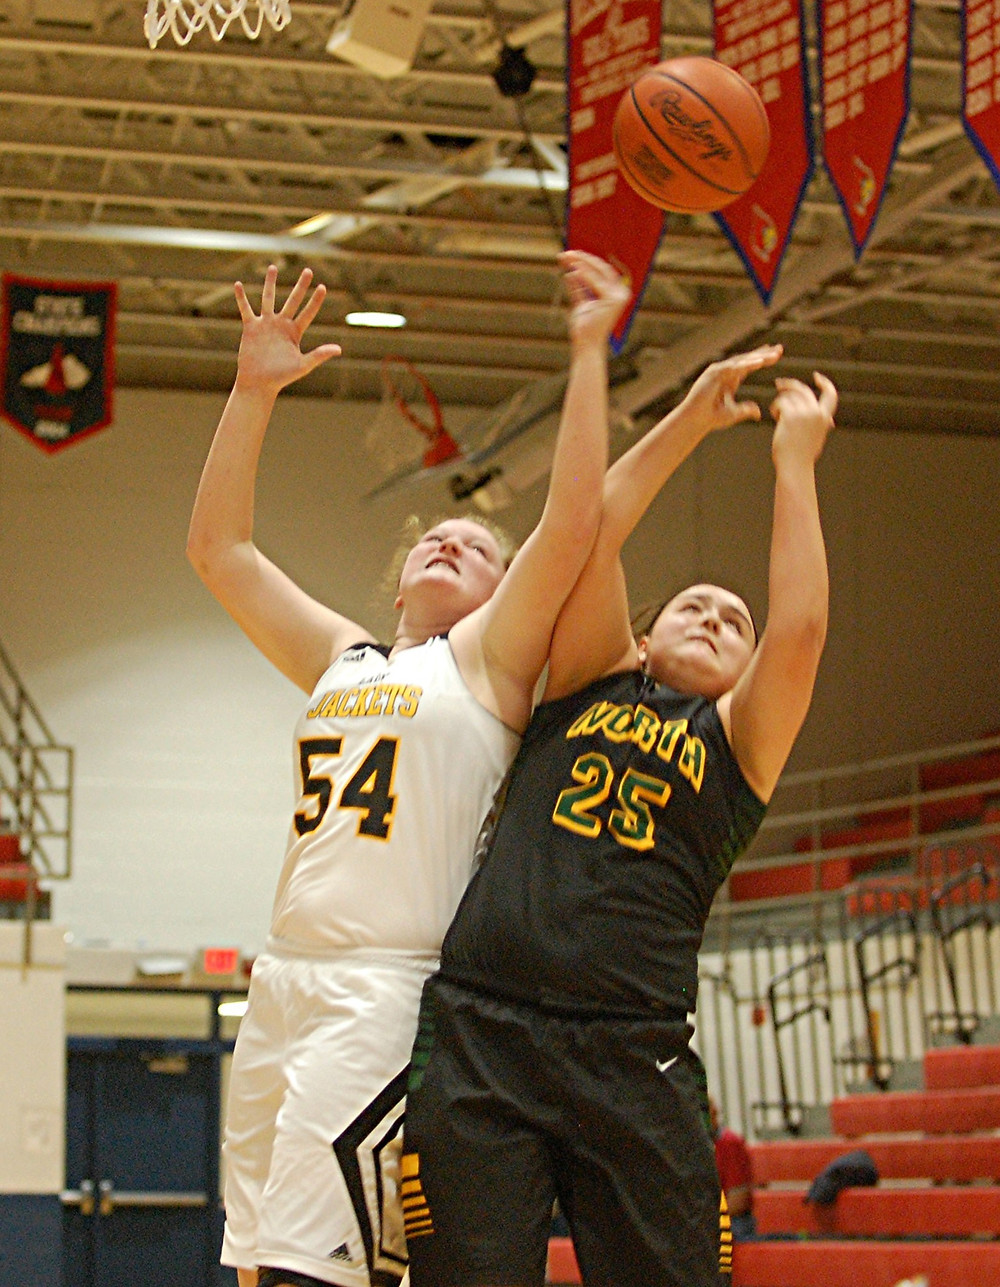 DELNEY ENLOW, No. 54, will be a player to watch on the Woodford County High School girls' basketball team. A freshman, Enlow will be counted on to pull down rebounds and score points under the basket for the Lady Jackets this season. (File photo by Rick Capone)